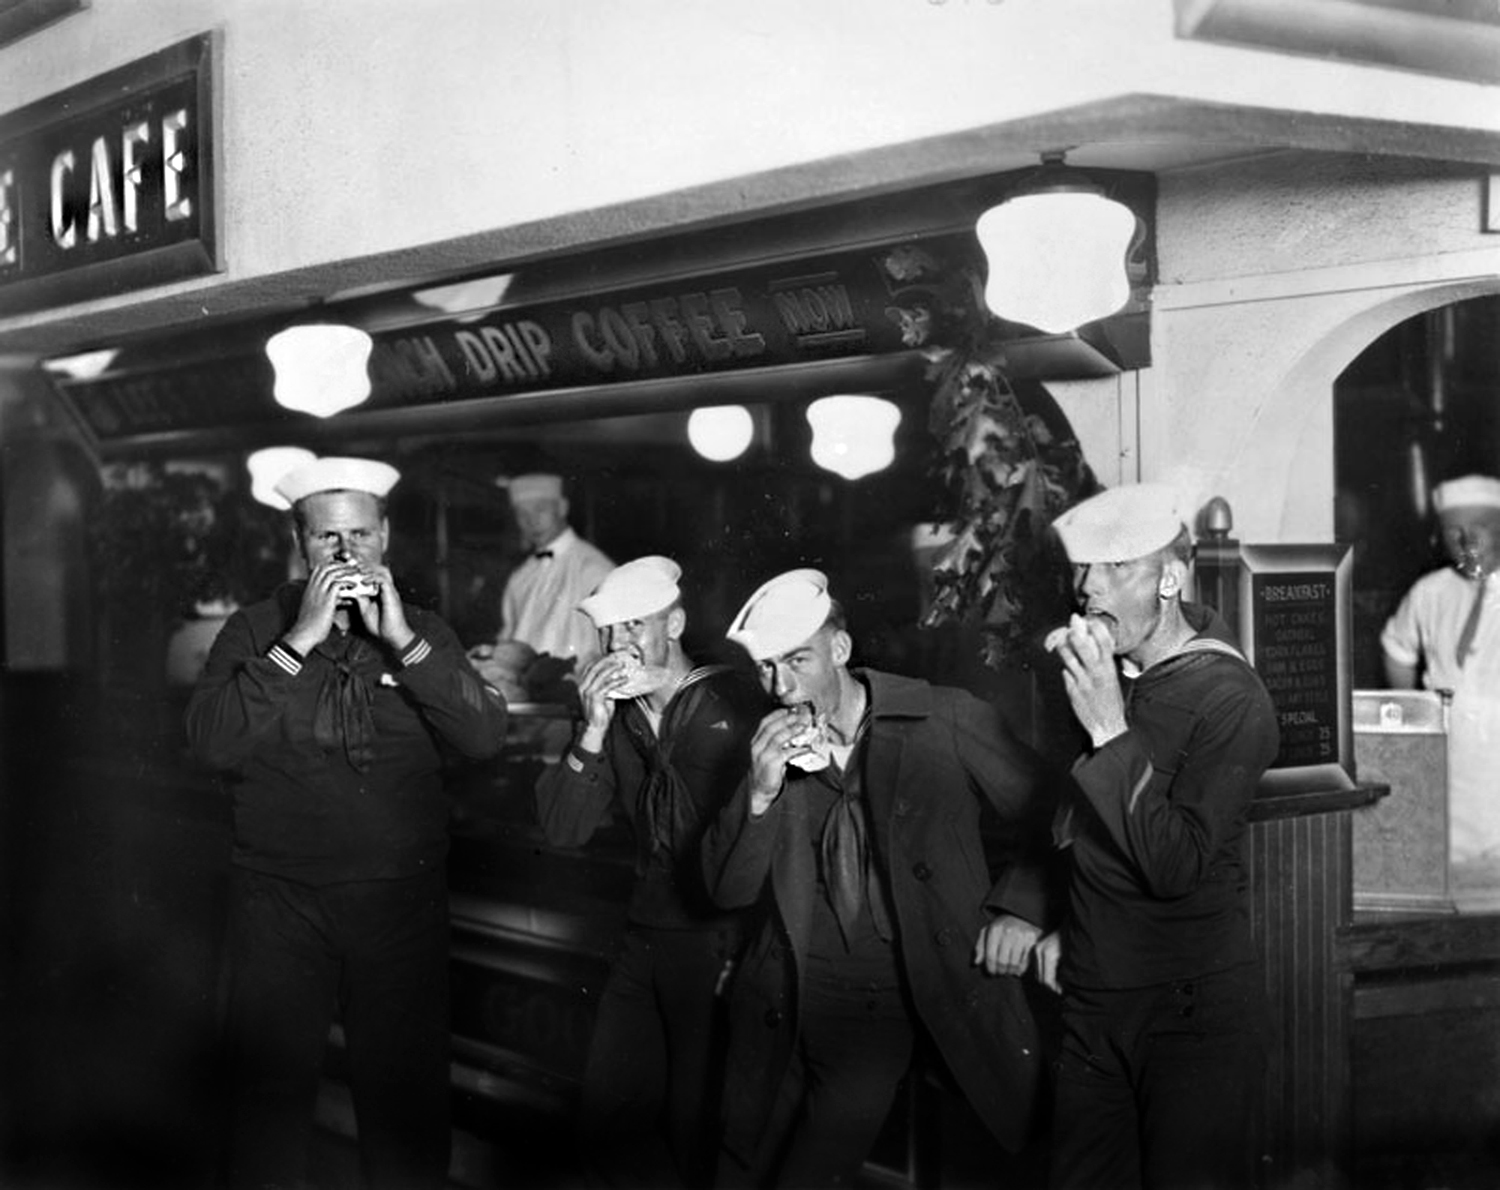 Shore Leave at the Pike, 1937